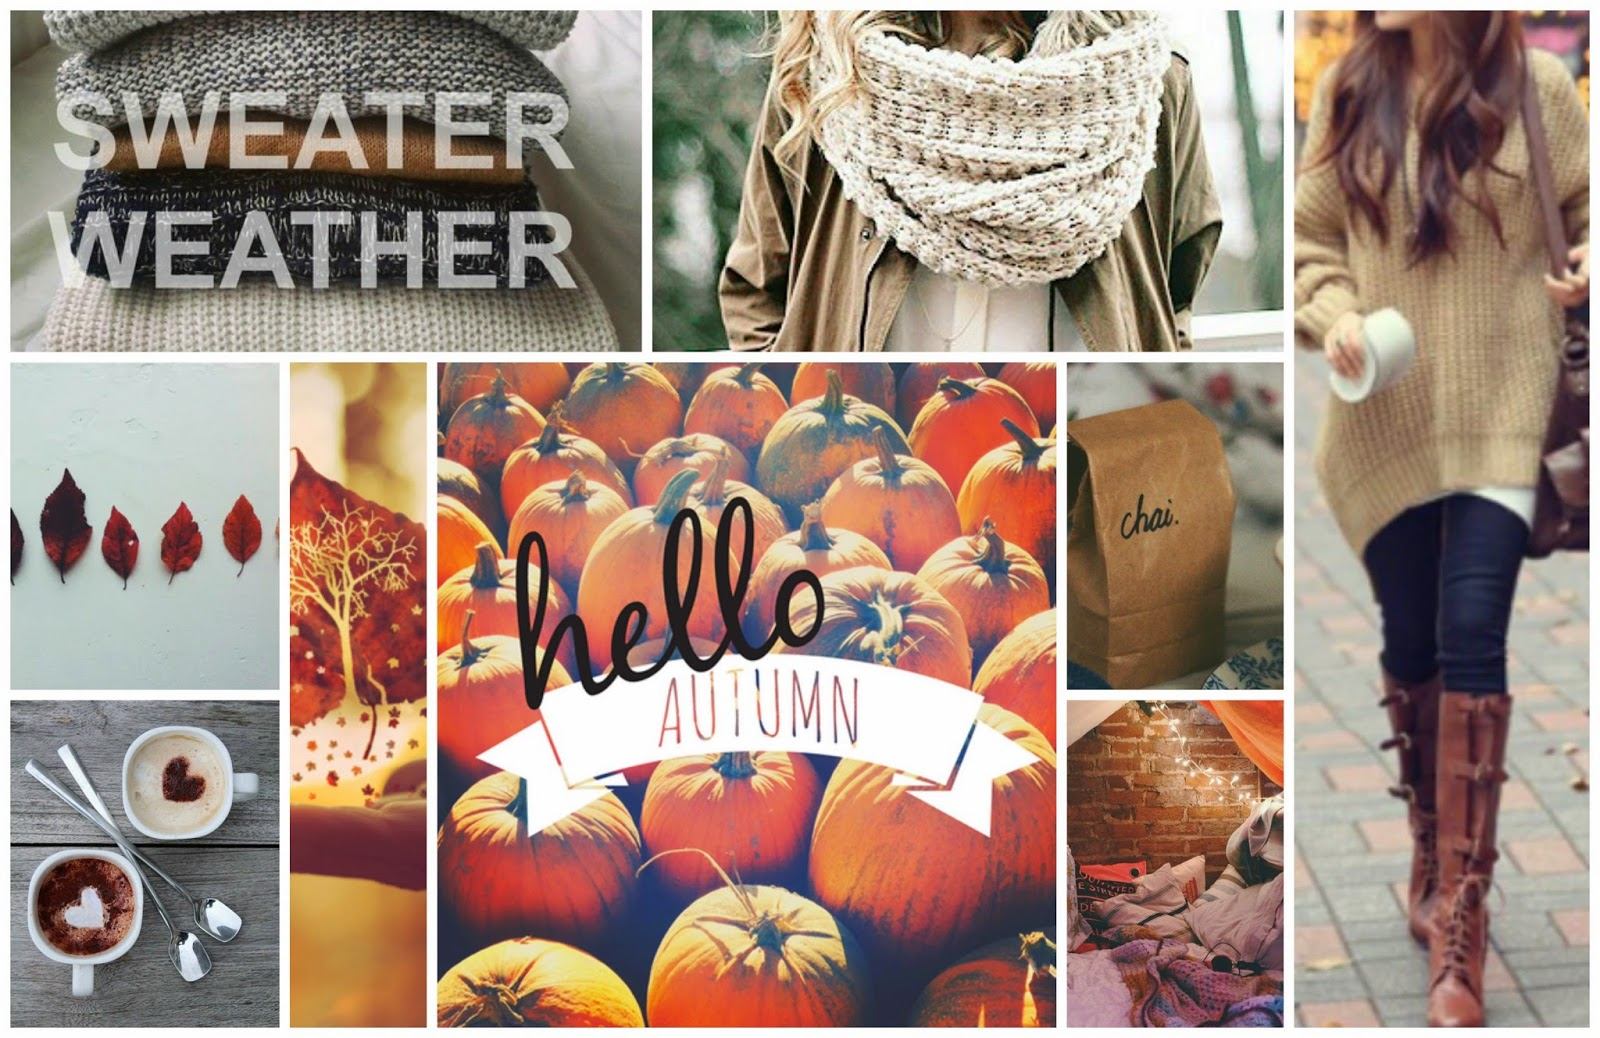 Guest Post: Ode to Sweater Weather | Up the Rollercoaster